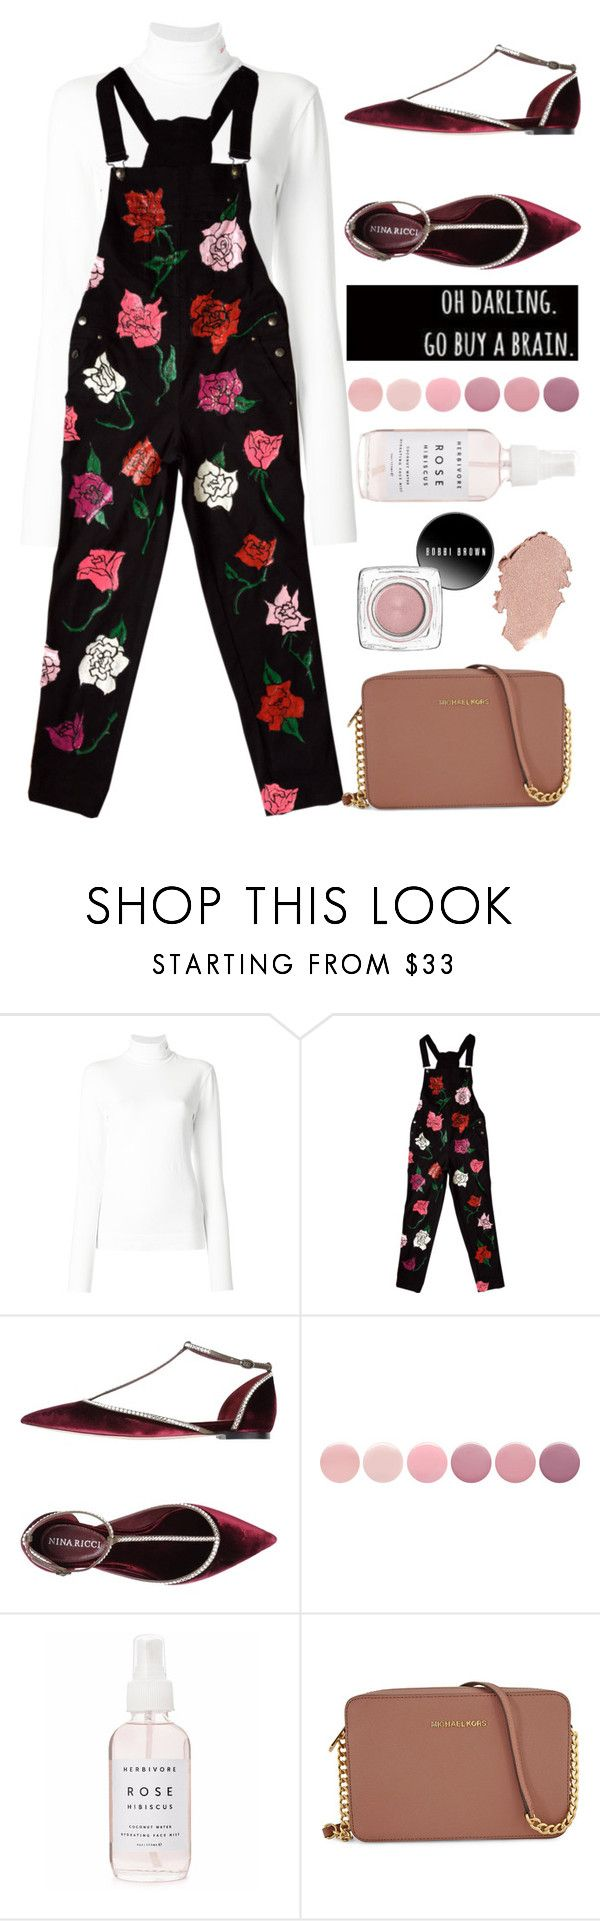 """""""rose me up"""" by lseed87 ❤ liked on Polyvore featuring Calvin Klein 205W39NYC, Nina Ricci, Deborah Lippmann, Holly's House and Michael Kors"""